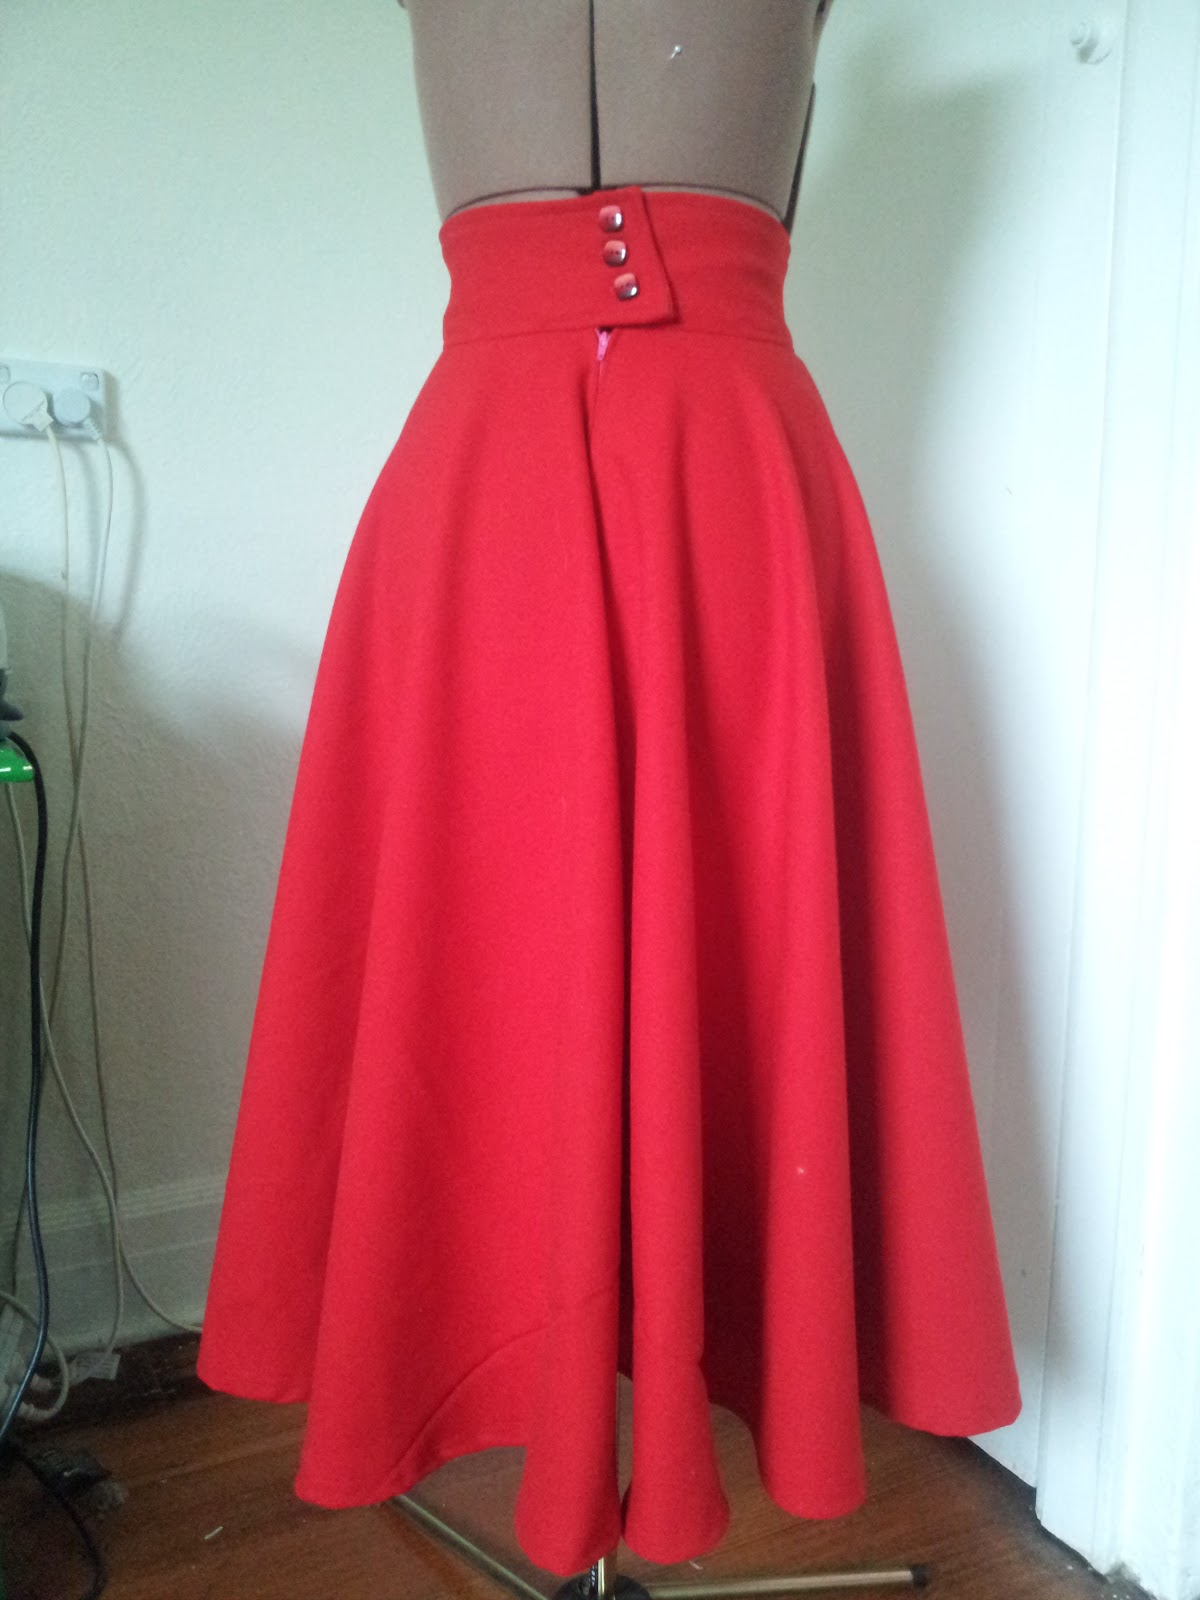 Long Circle Skirt Description Our Long Circle Skirt flows to give its wearer a graceful and stunningly beautiful look that no one will be able to ignore. Longer than our regular cicle skirt, the Long Circle Skirt comes just below the knees giving an added sense of modesty to its .